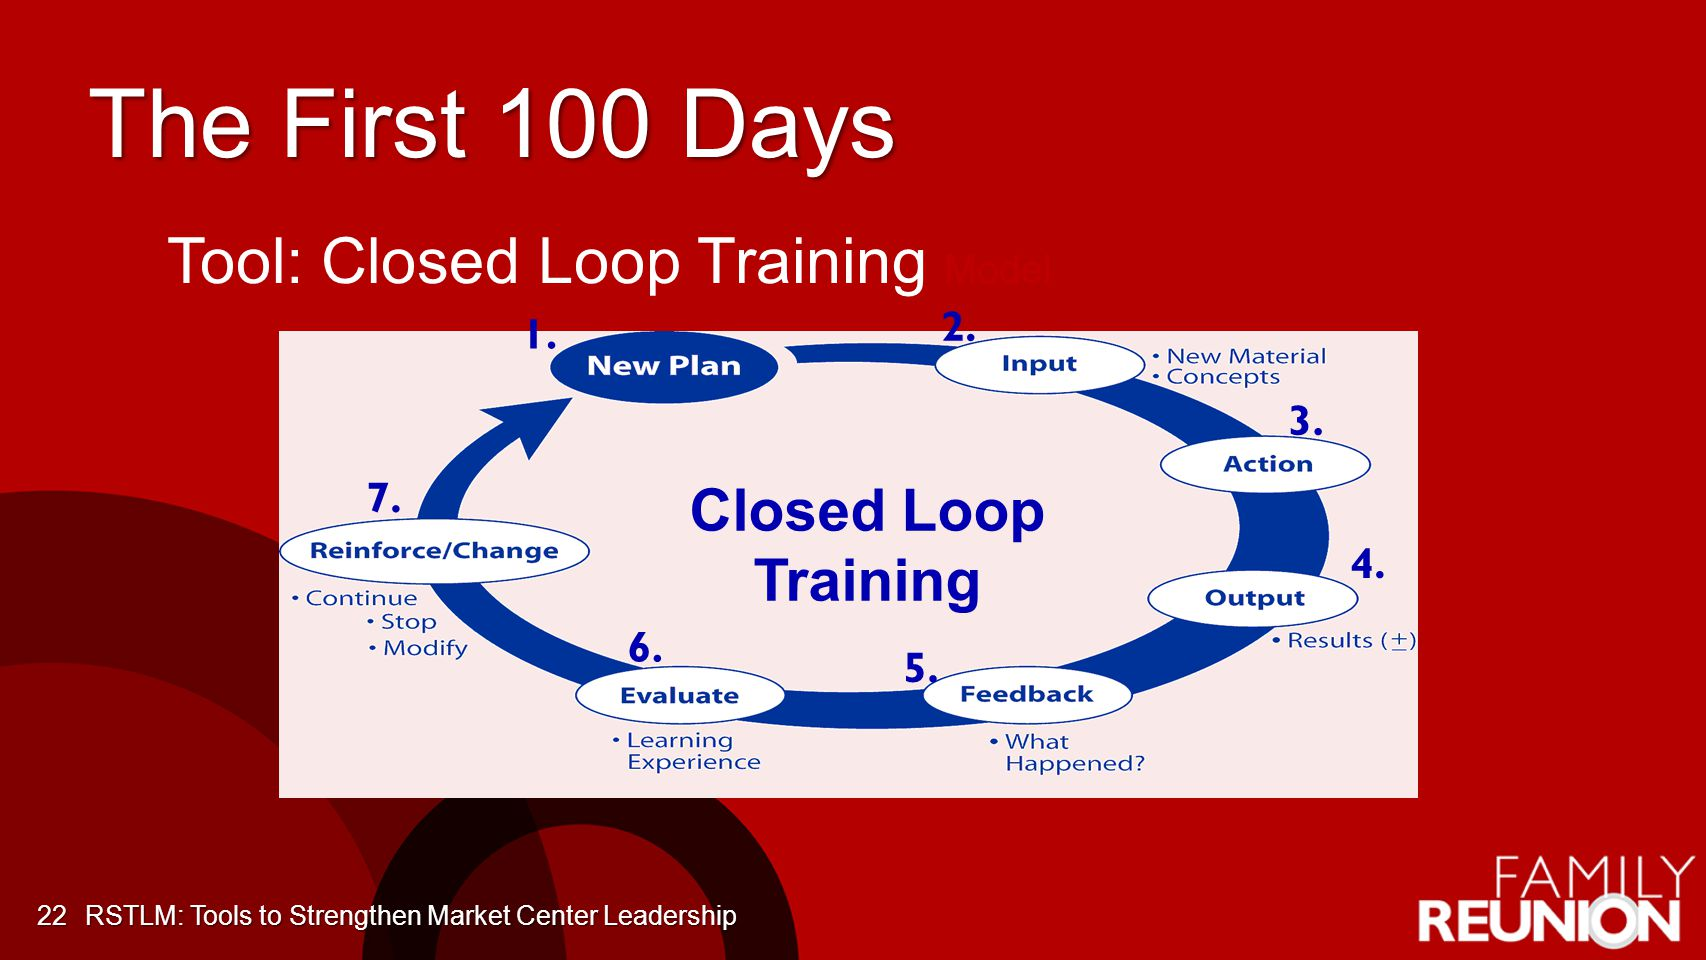 The First 100 Days Tool: Closed Loop Training Model